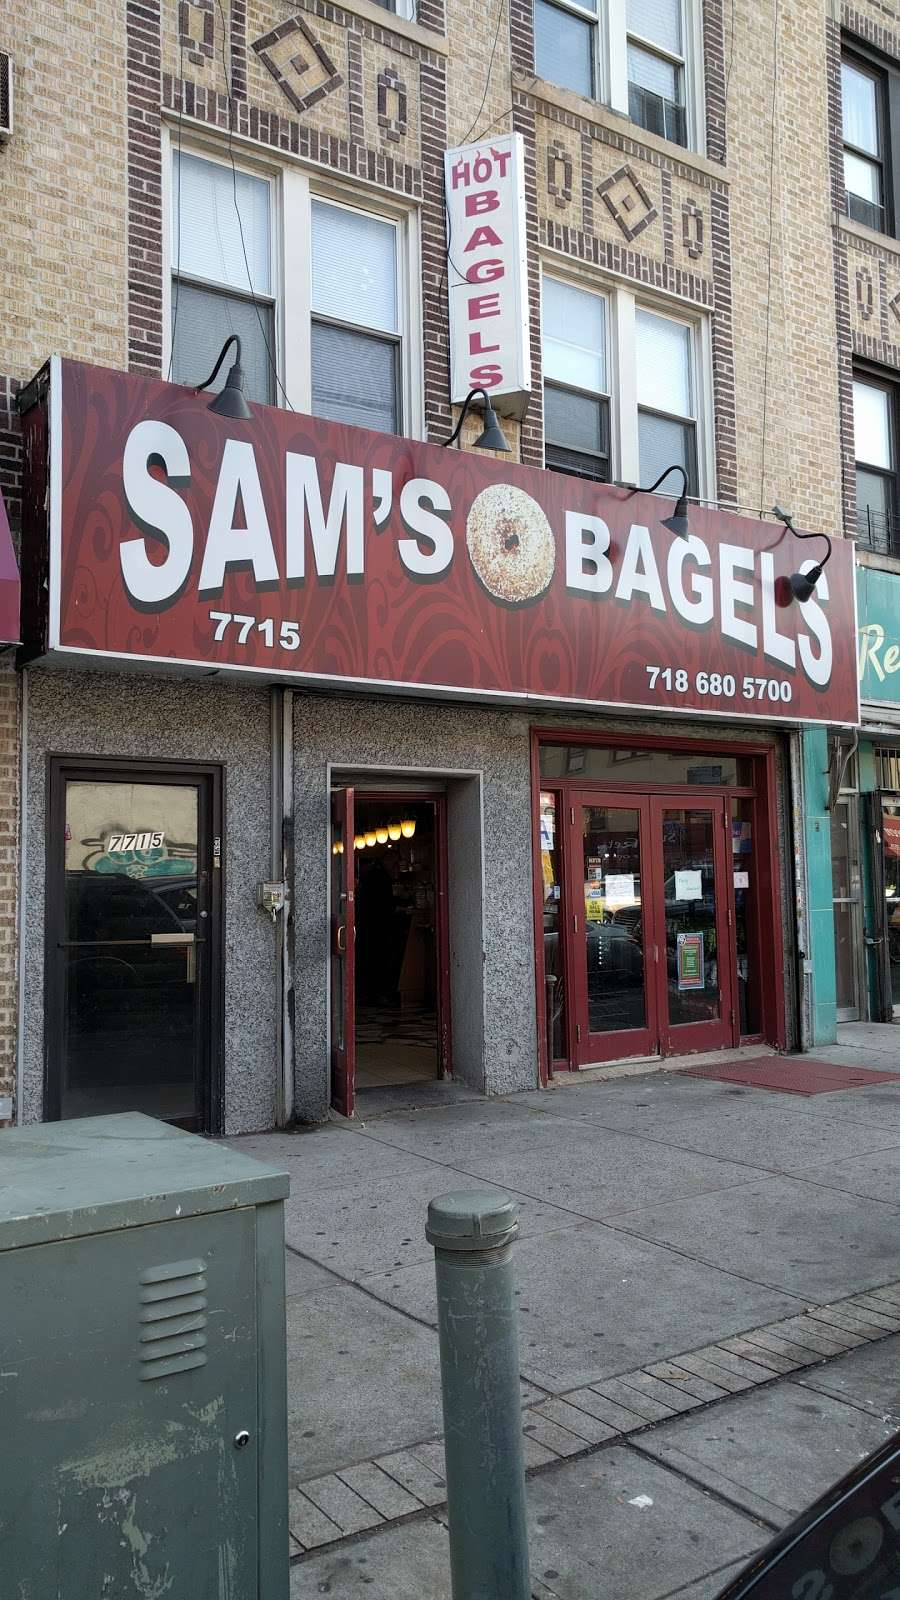 Sams Bagels - bakery  | Photo 8 of 9 | Address: 7715 5th Ave, Brooklyn, NY 11209, USA | Phone: (718) 680-5700